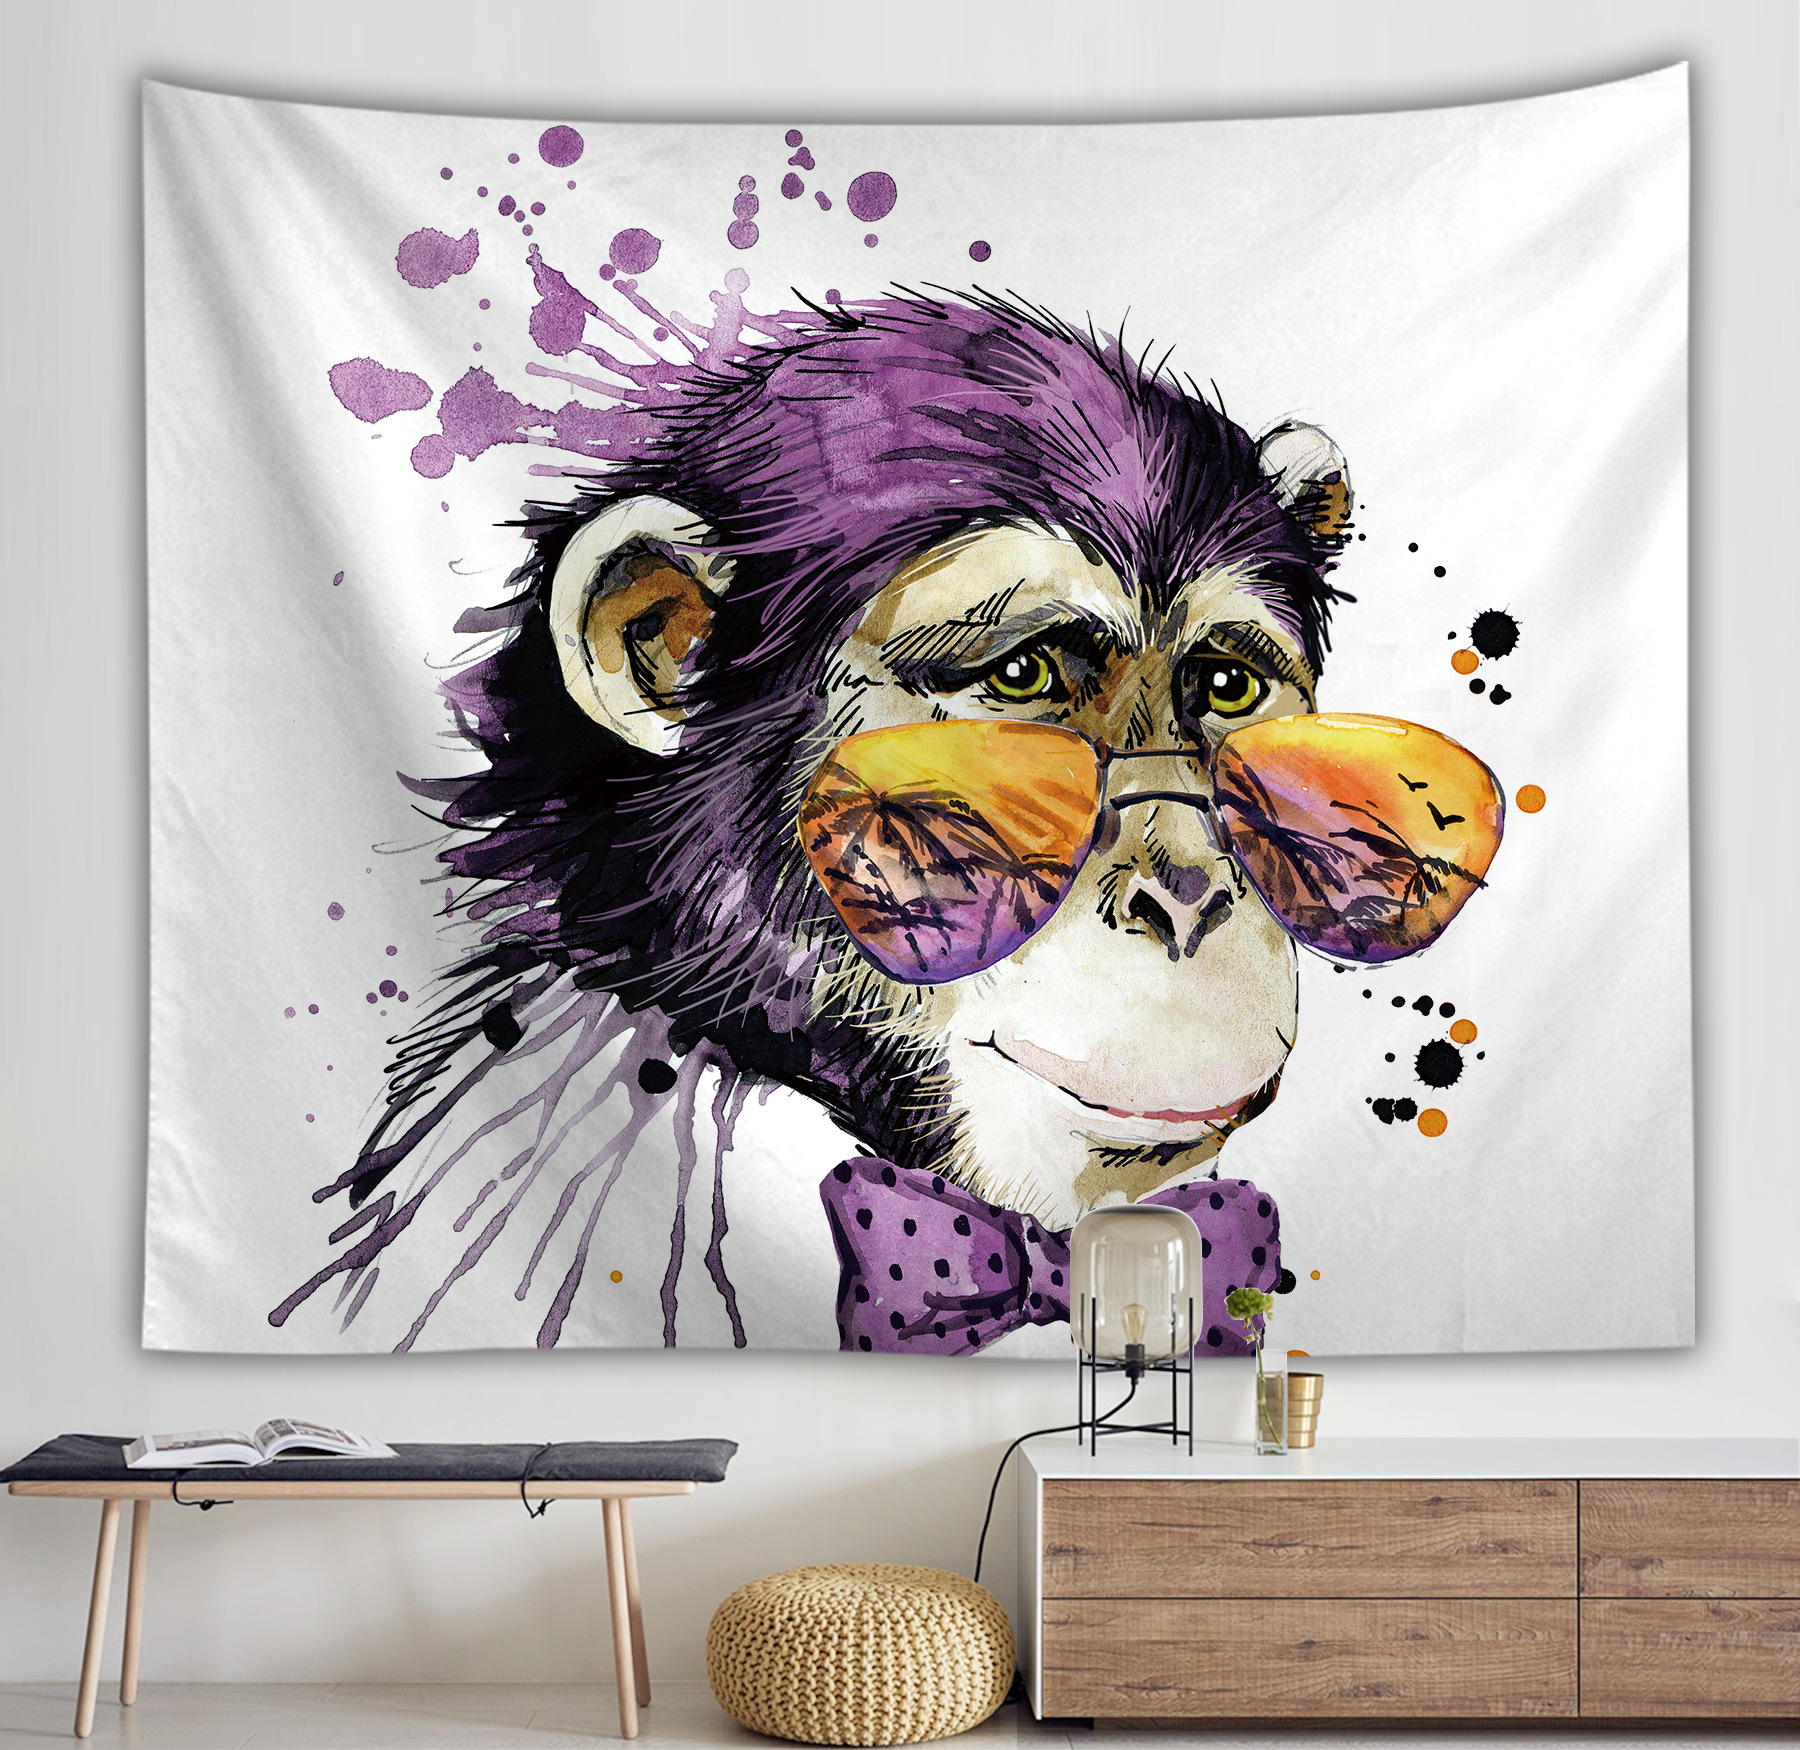 Wall fabric decoration Cartoon Glasses monkey wall tapestry art Printed wall hanging decor 100% Polyester